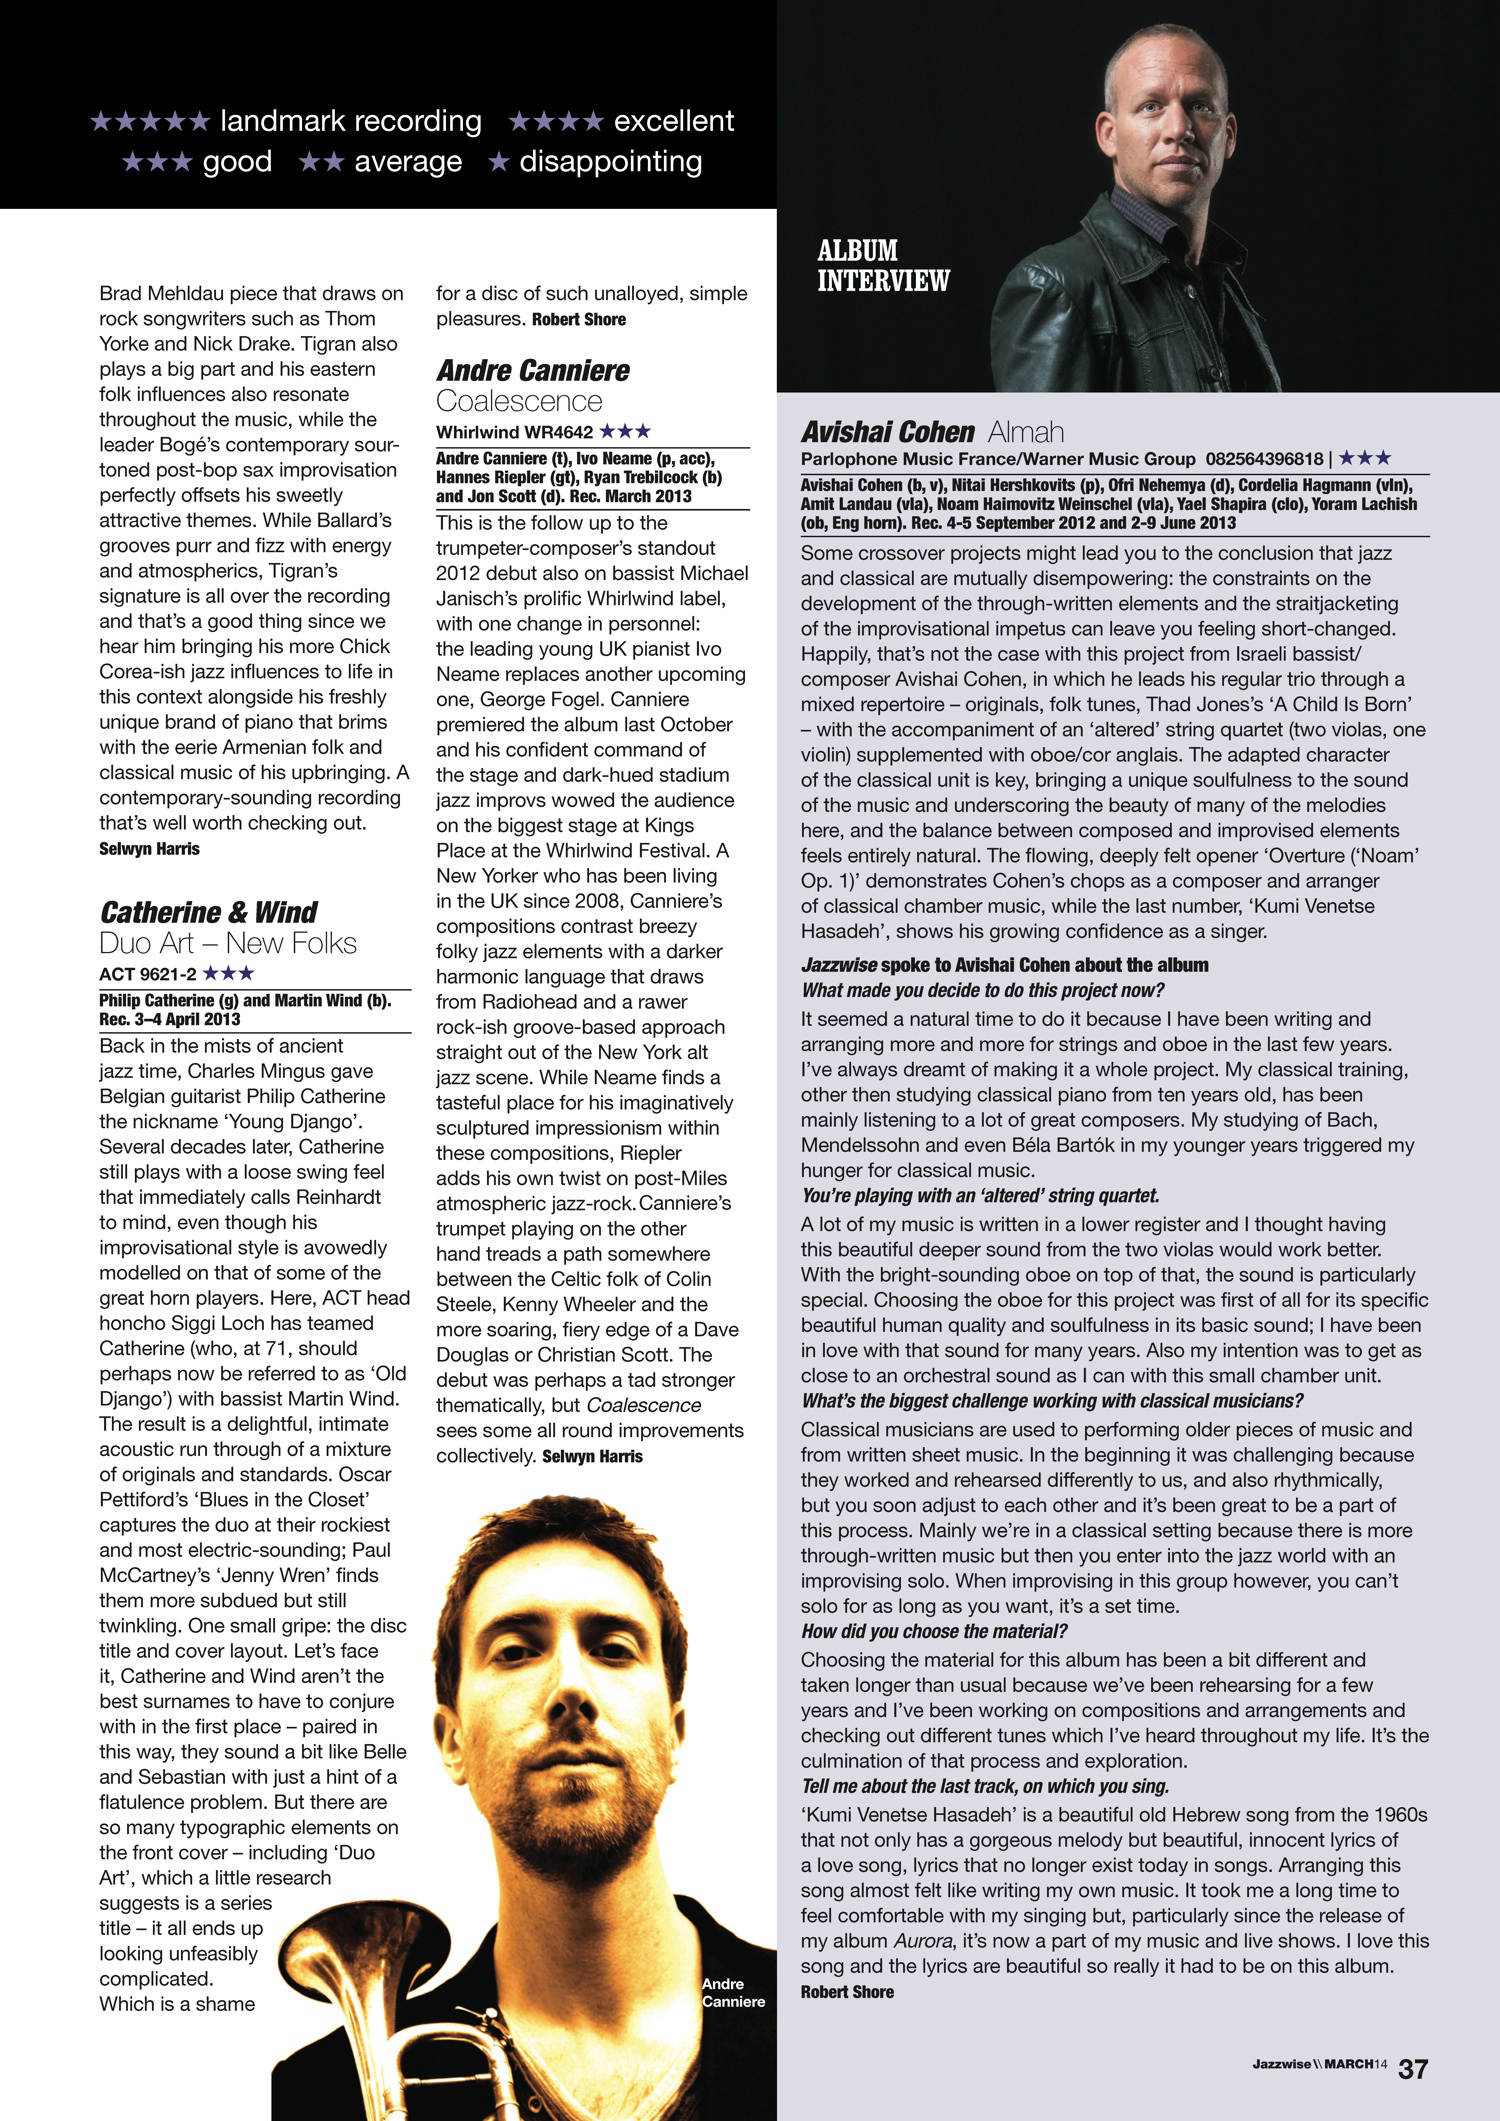 Jazzwise Review of Coalescence